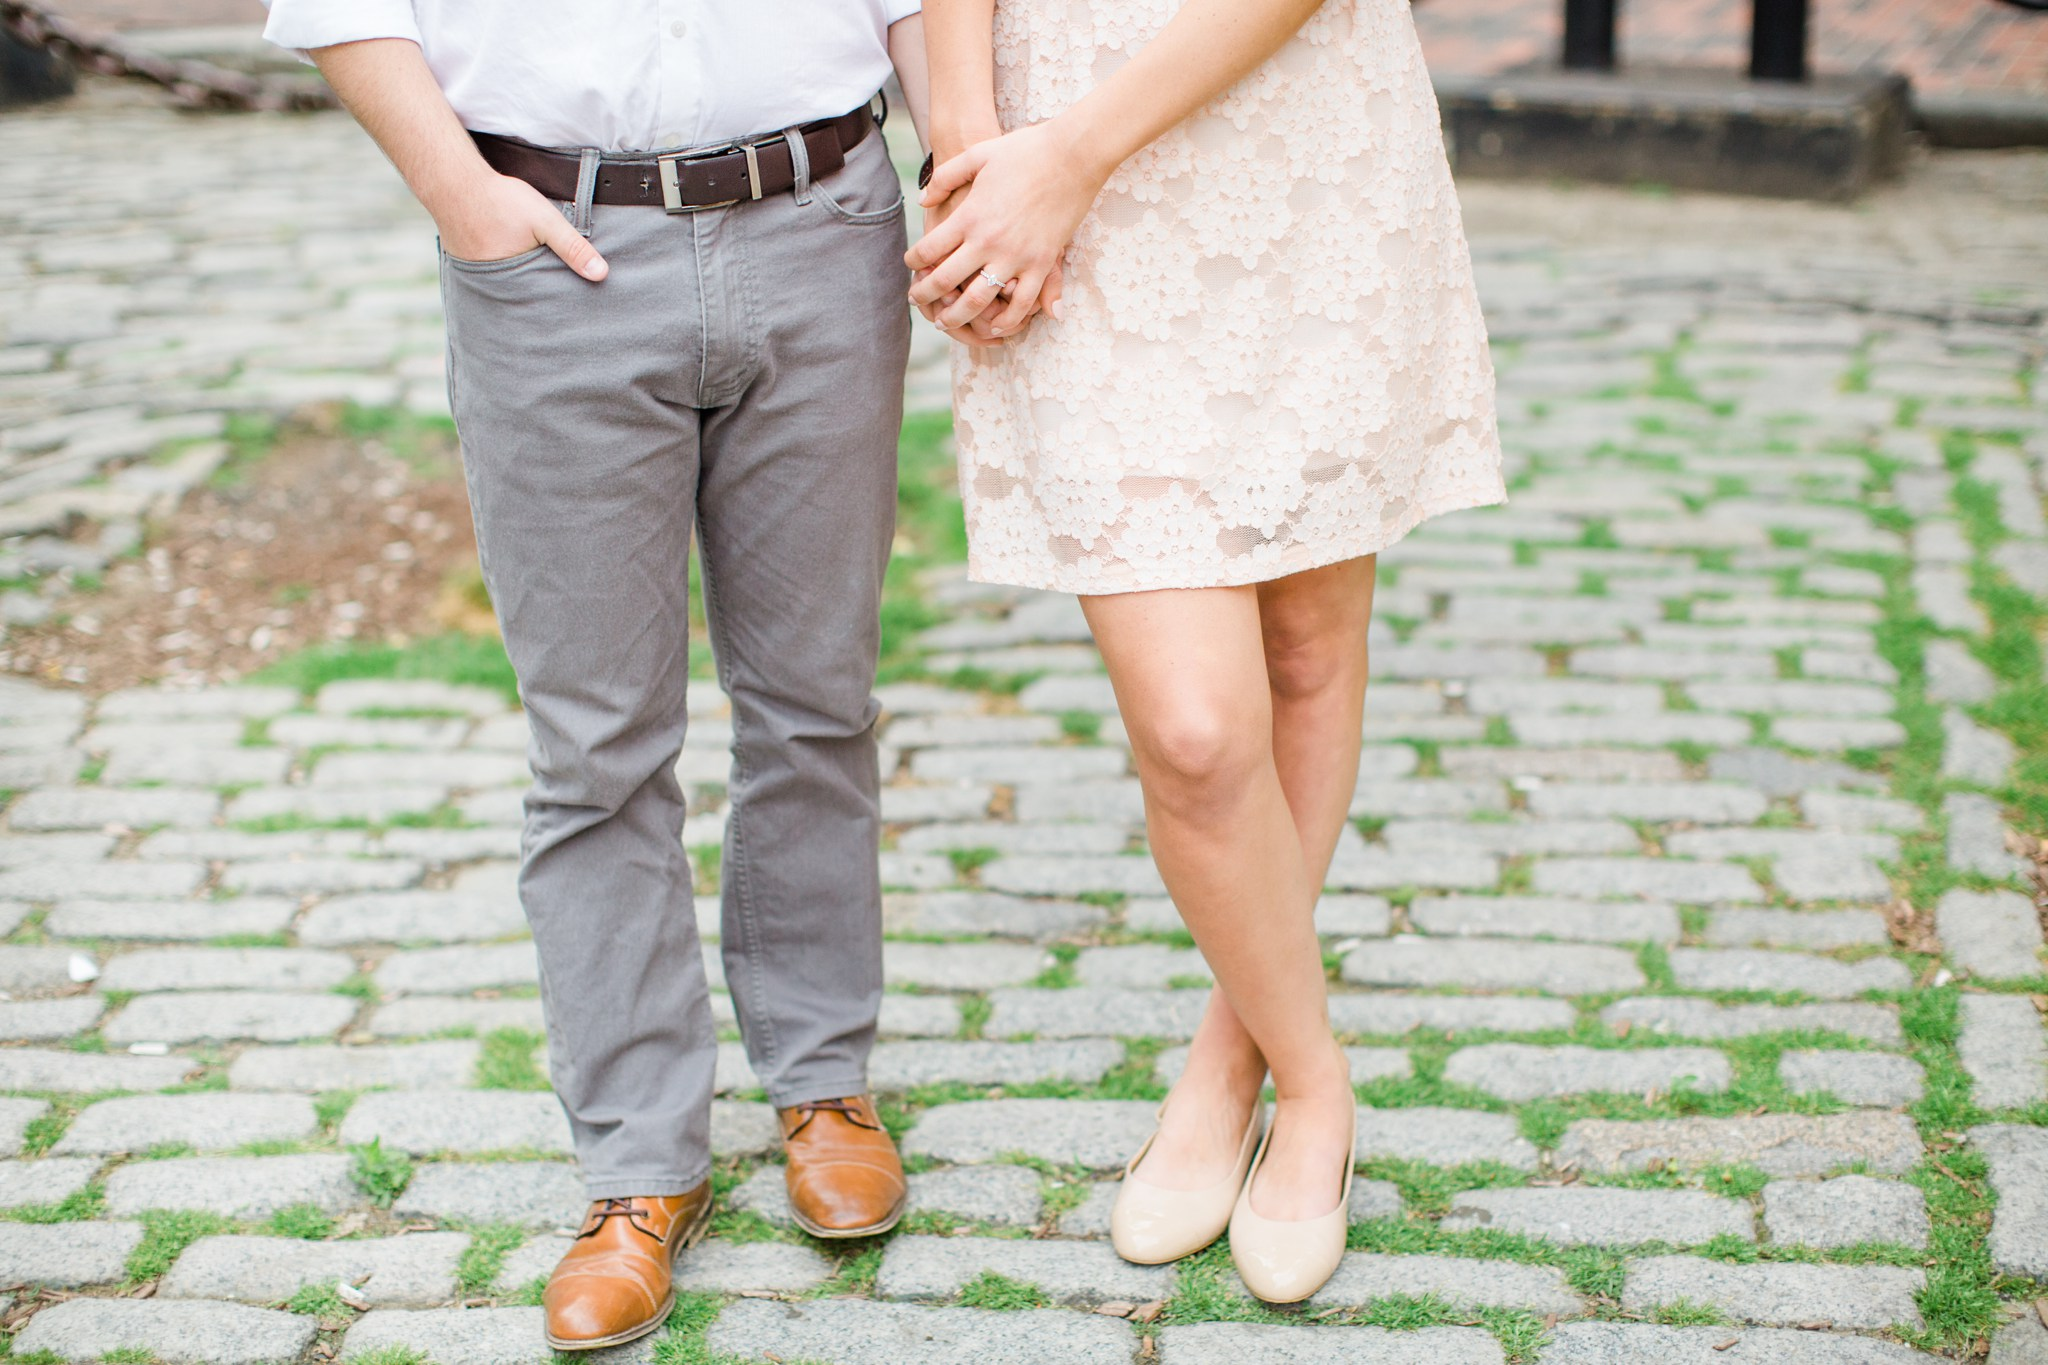 north_end_engagement_session_0013.JPG